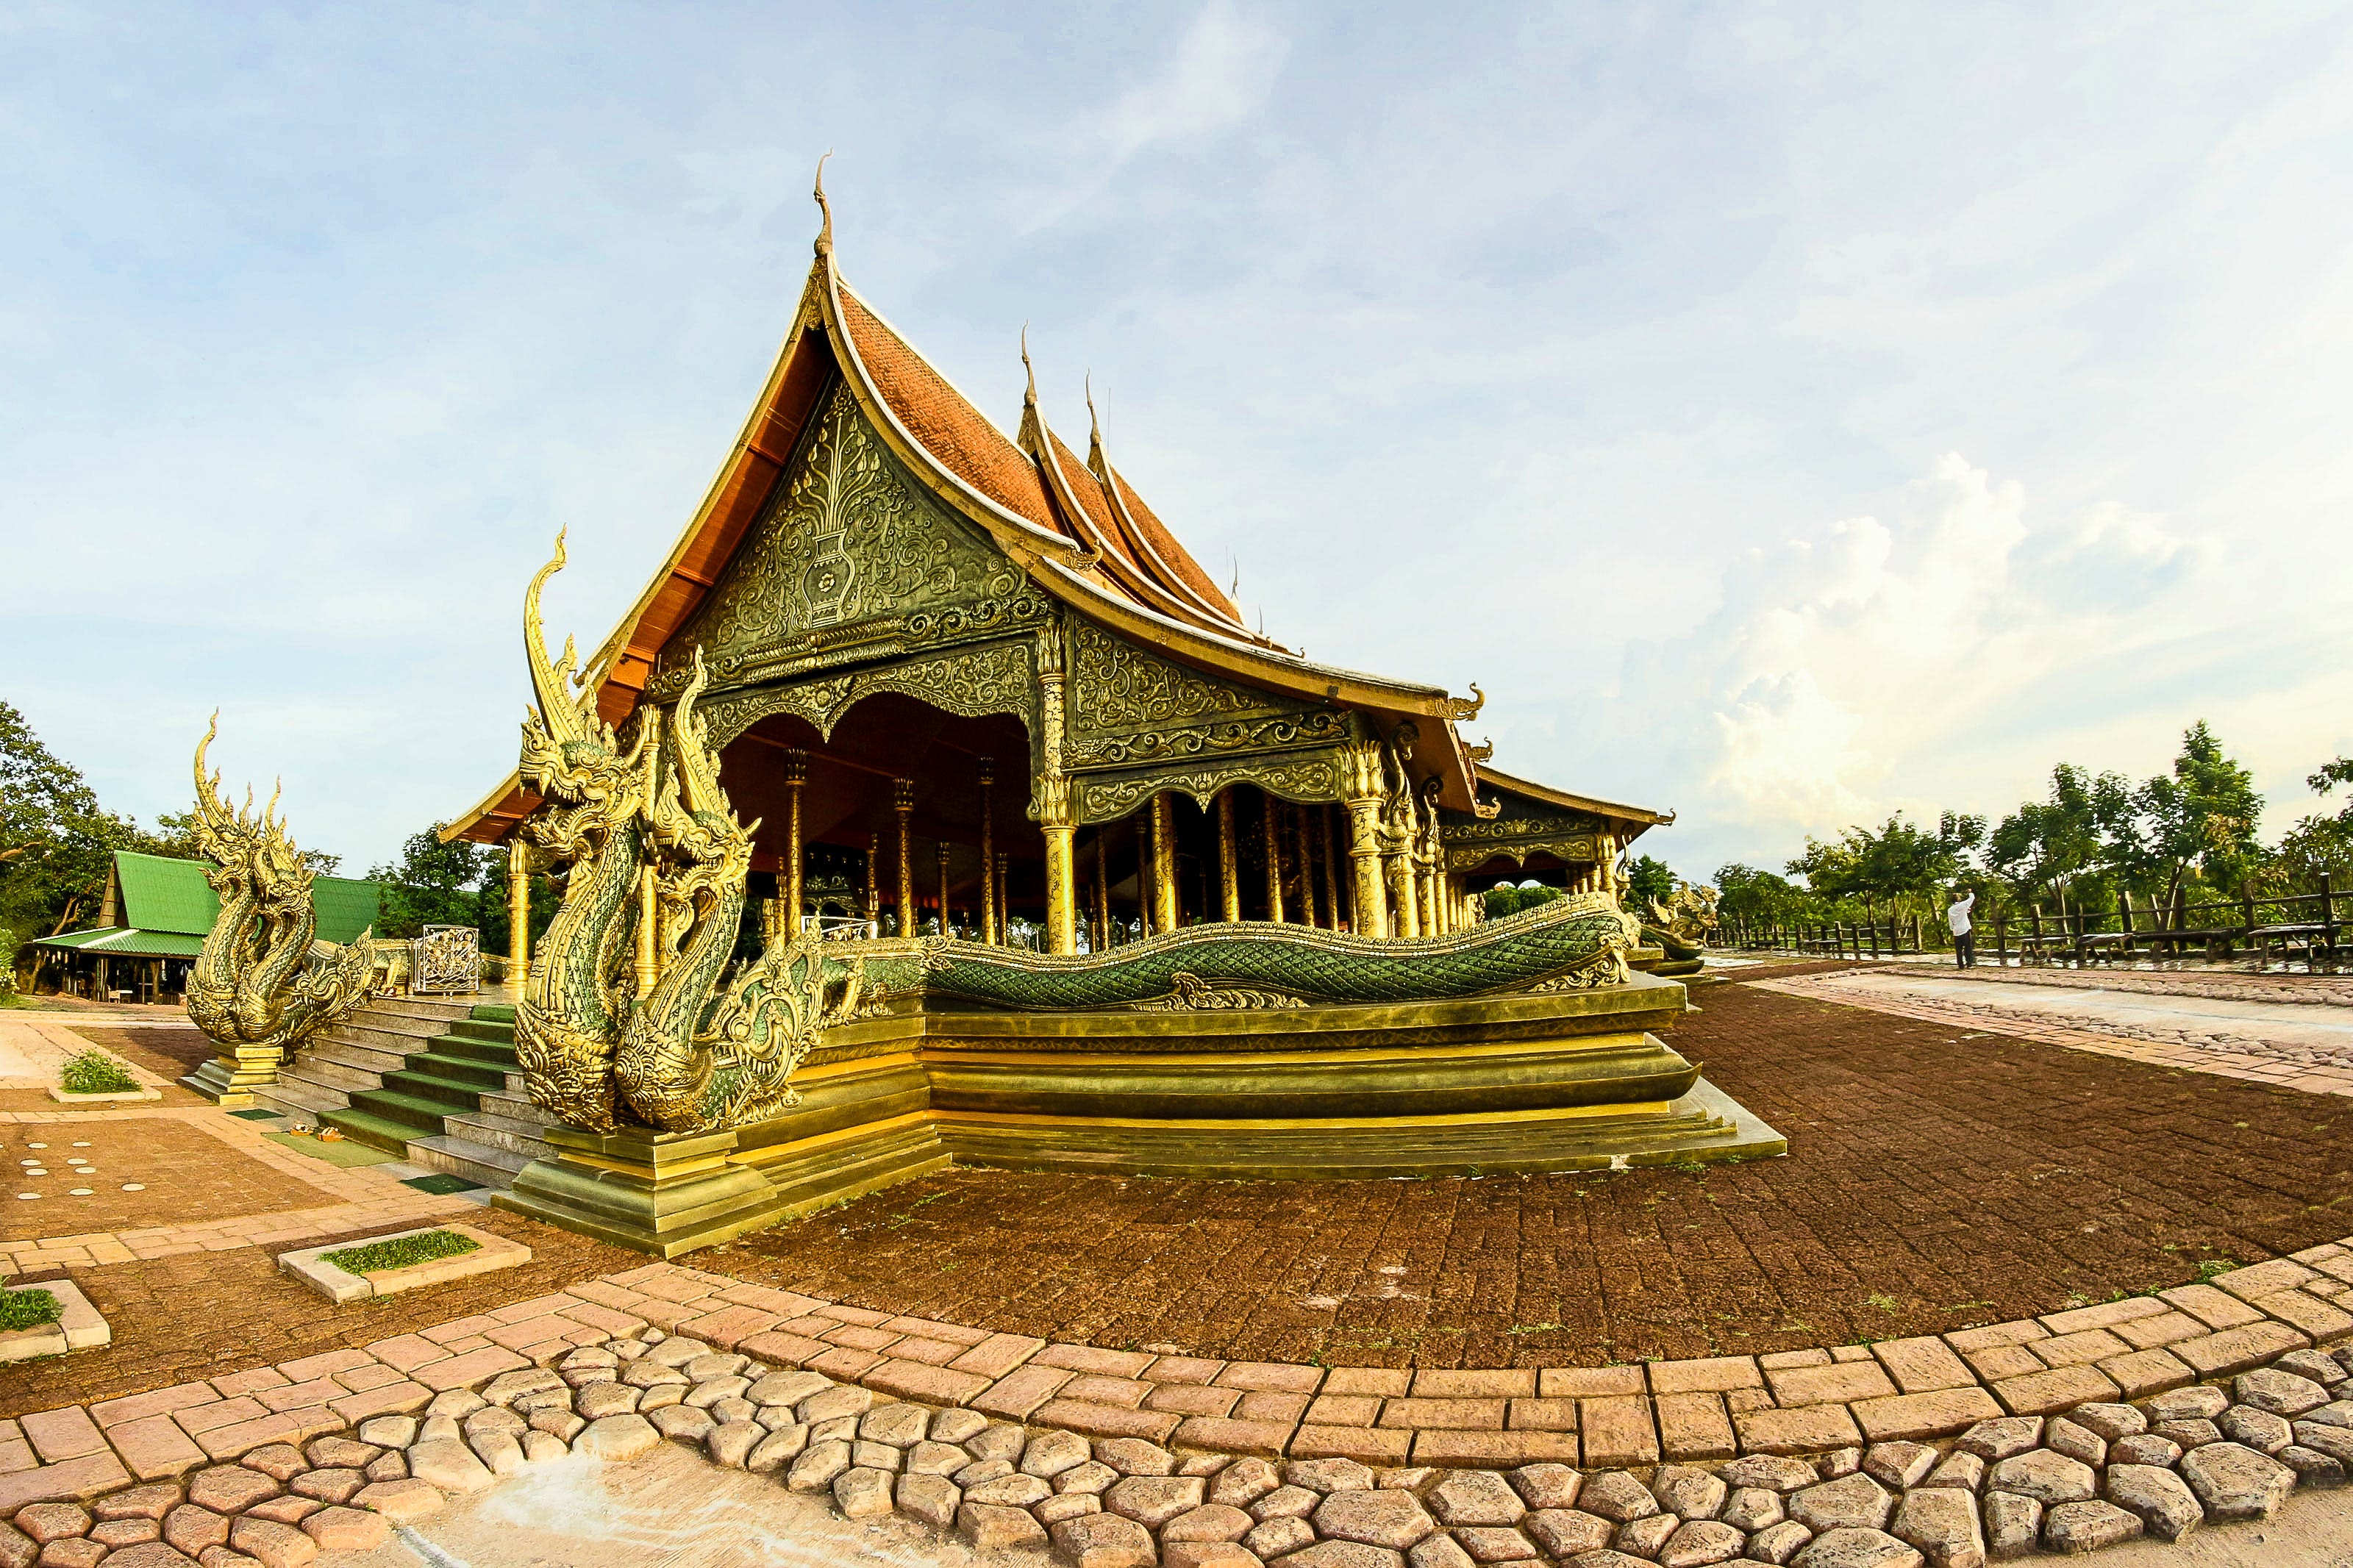 Green and Brown Pagoda Temple